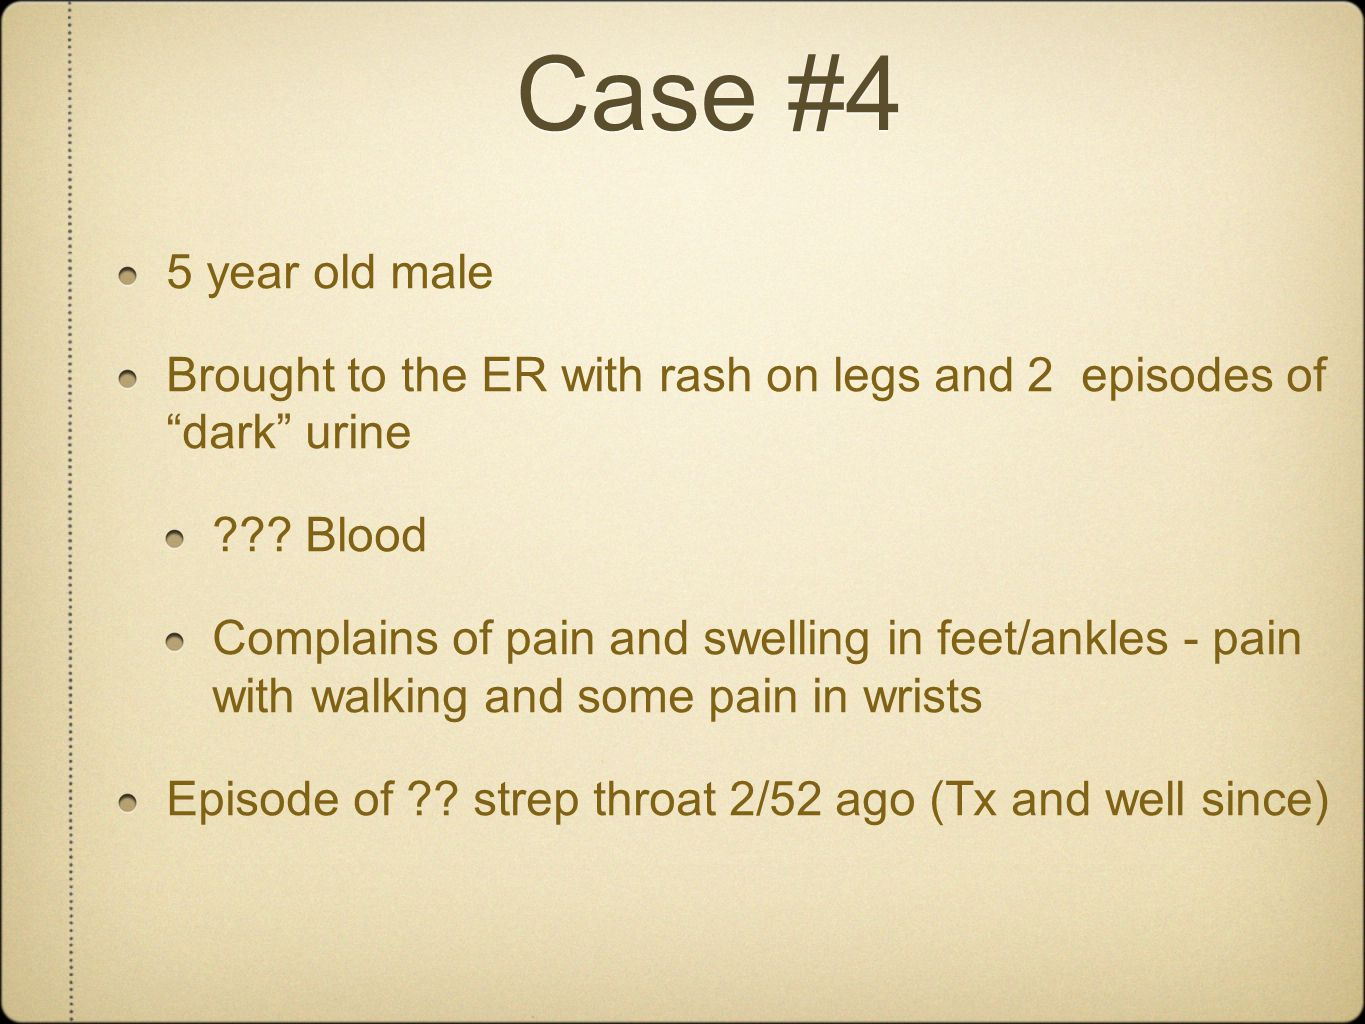 Case #4 5 year old male. Brought to the ER with rash on legs and 2 episodes of dark urine. Blood.